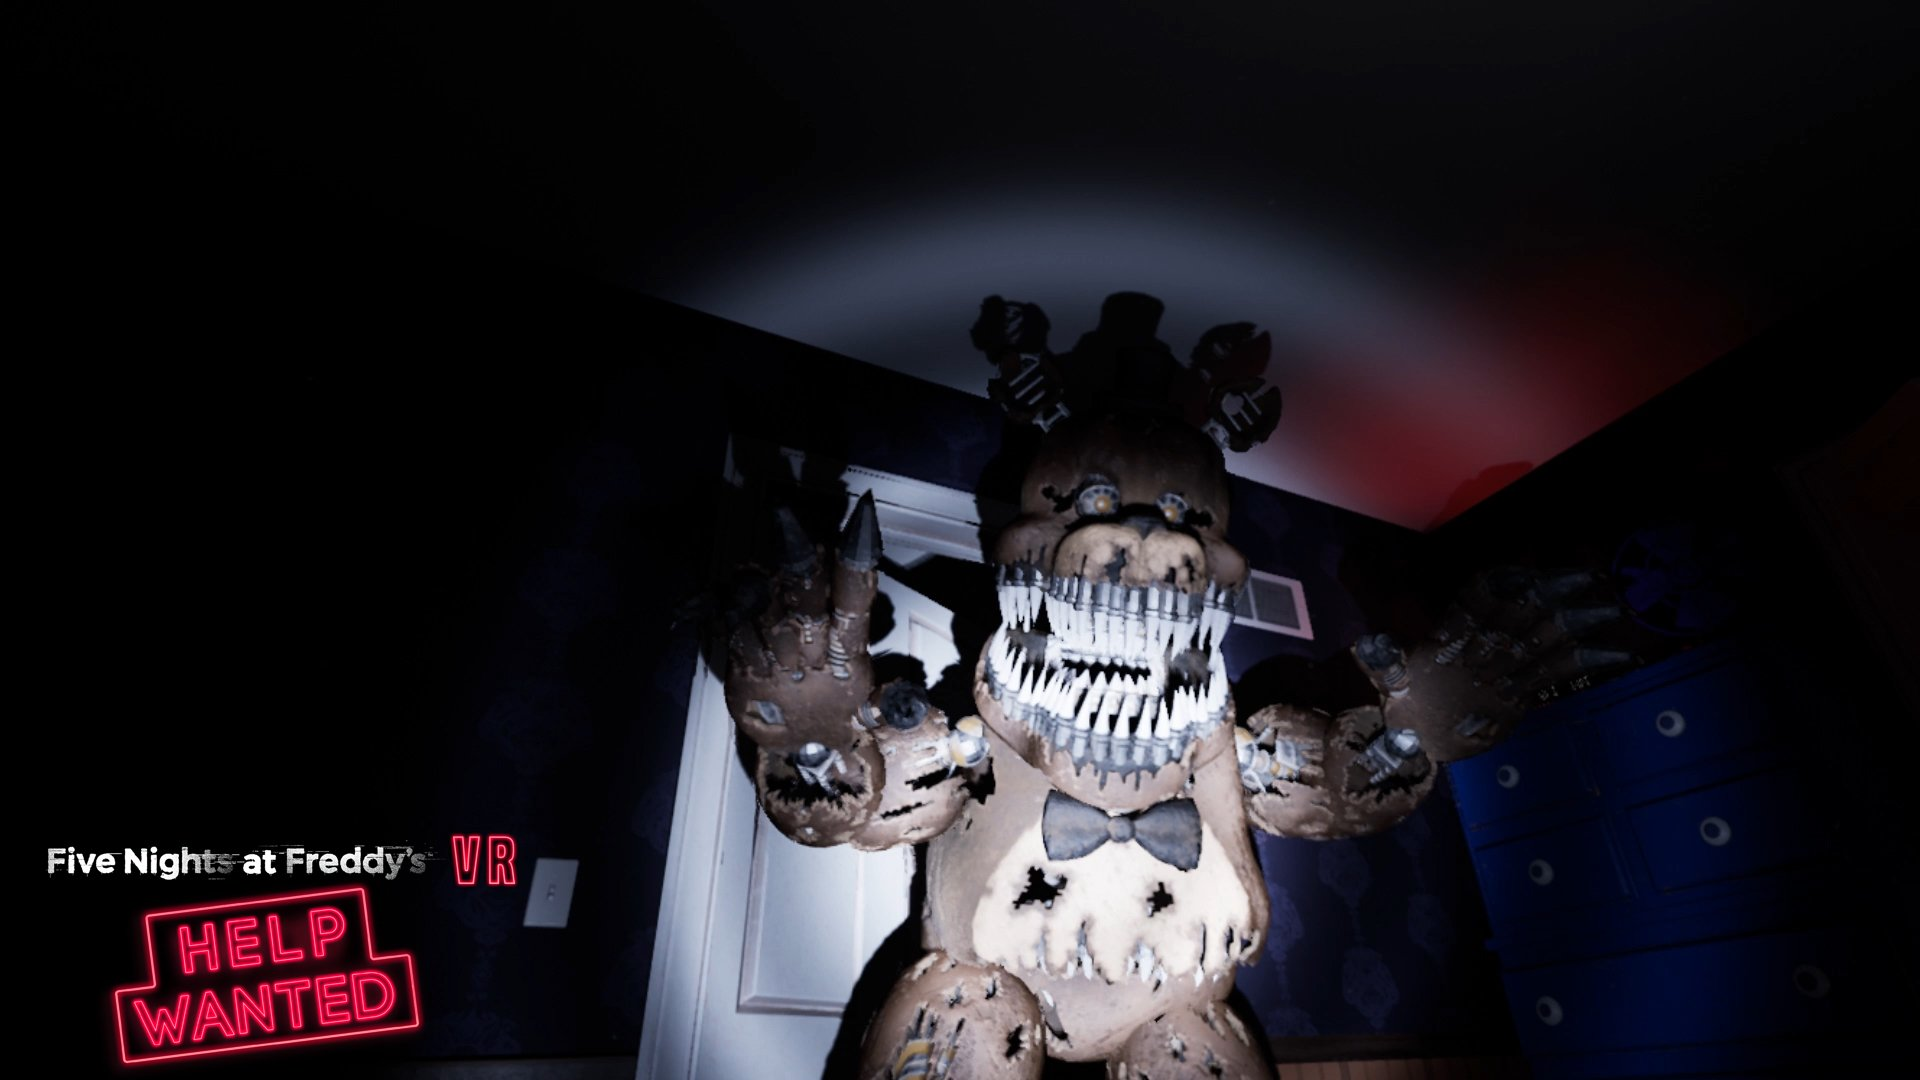 Five Nights at Freddy's VR: Help Wanted Freddy screenshot